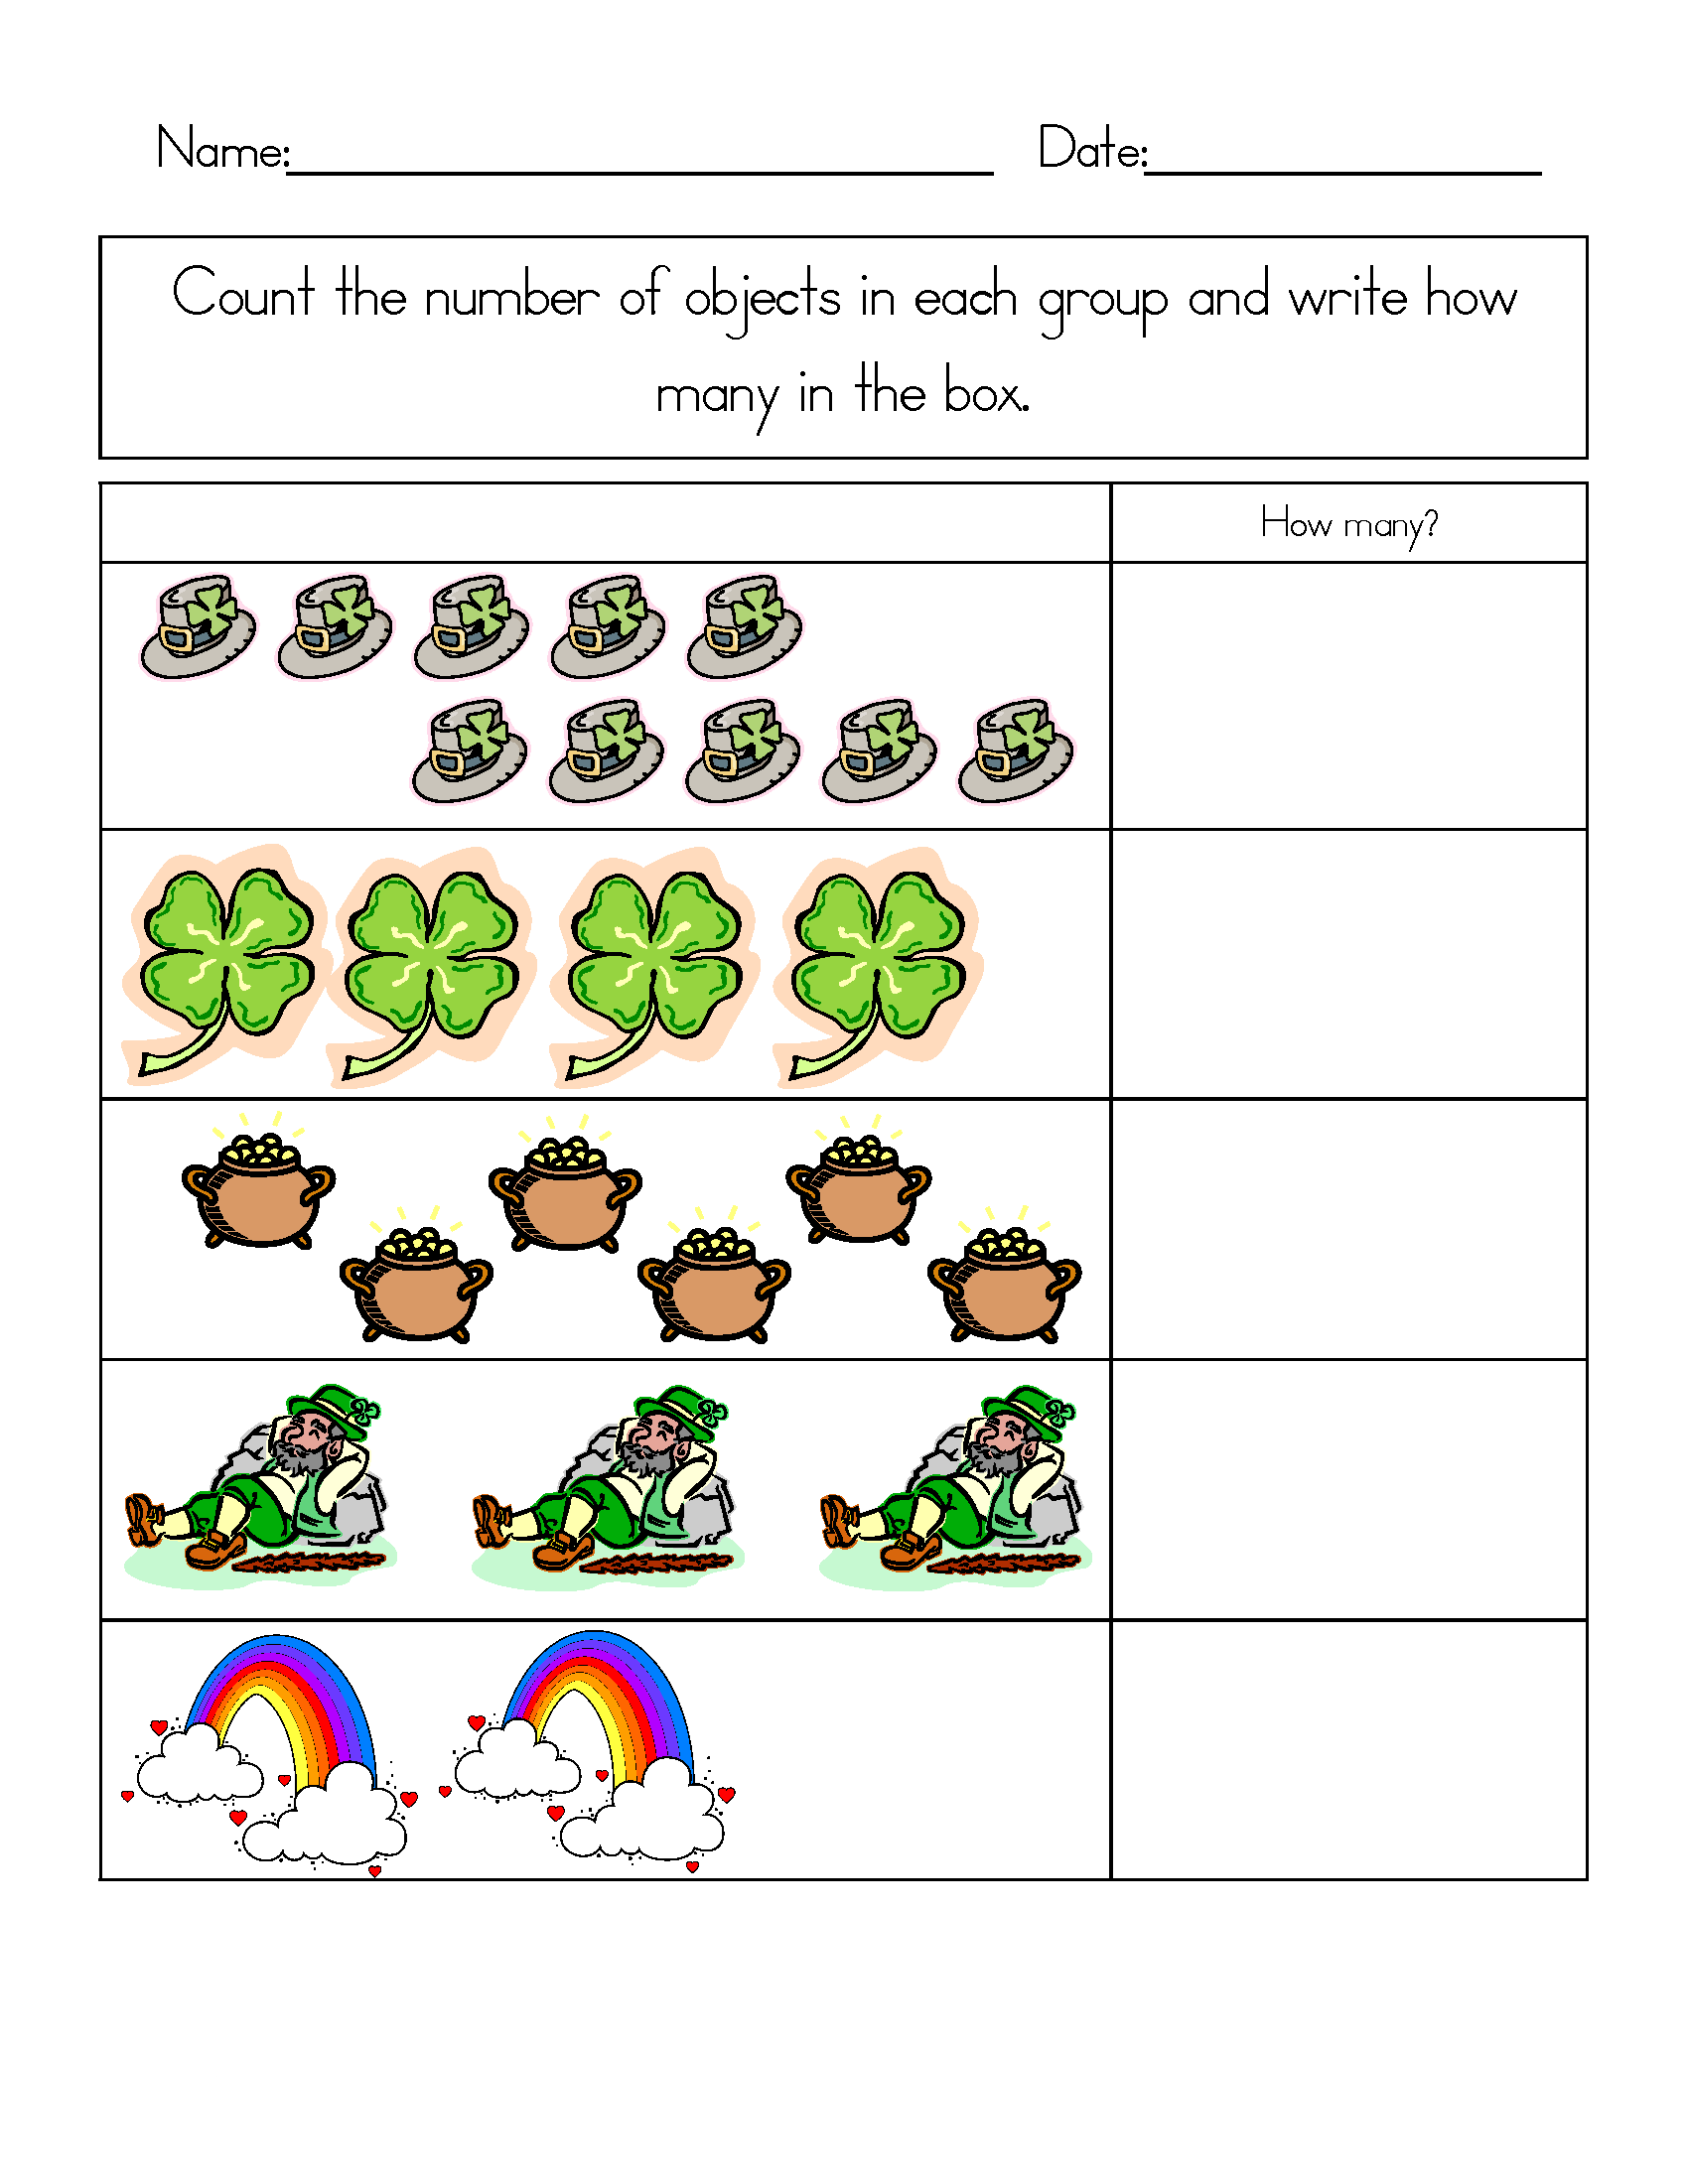 Free Coloring Printables For Kids St Patricks Day Sayings St Patricks Day Shamrock Leprechaum Printables Coloring Pages Cards Worksheets Word Search Activities Kids Adults Image also St Patricks Day Rainbow Coloring Pages For Preschool besides Print Free St Patricks Day Math Worksheets likewise Stpatstwodigitaddwithoutregroup additionally B Fad Cc A B Ed Eeb. on leprechaun preschool math worksheet